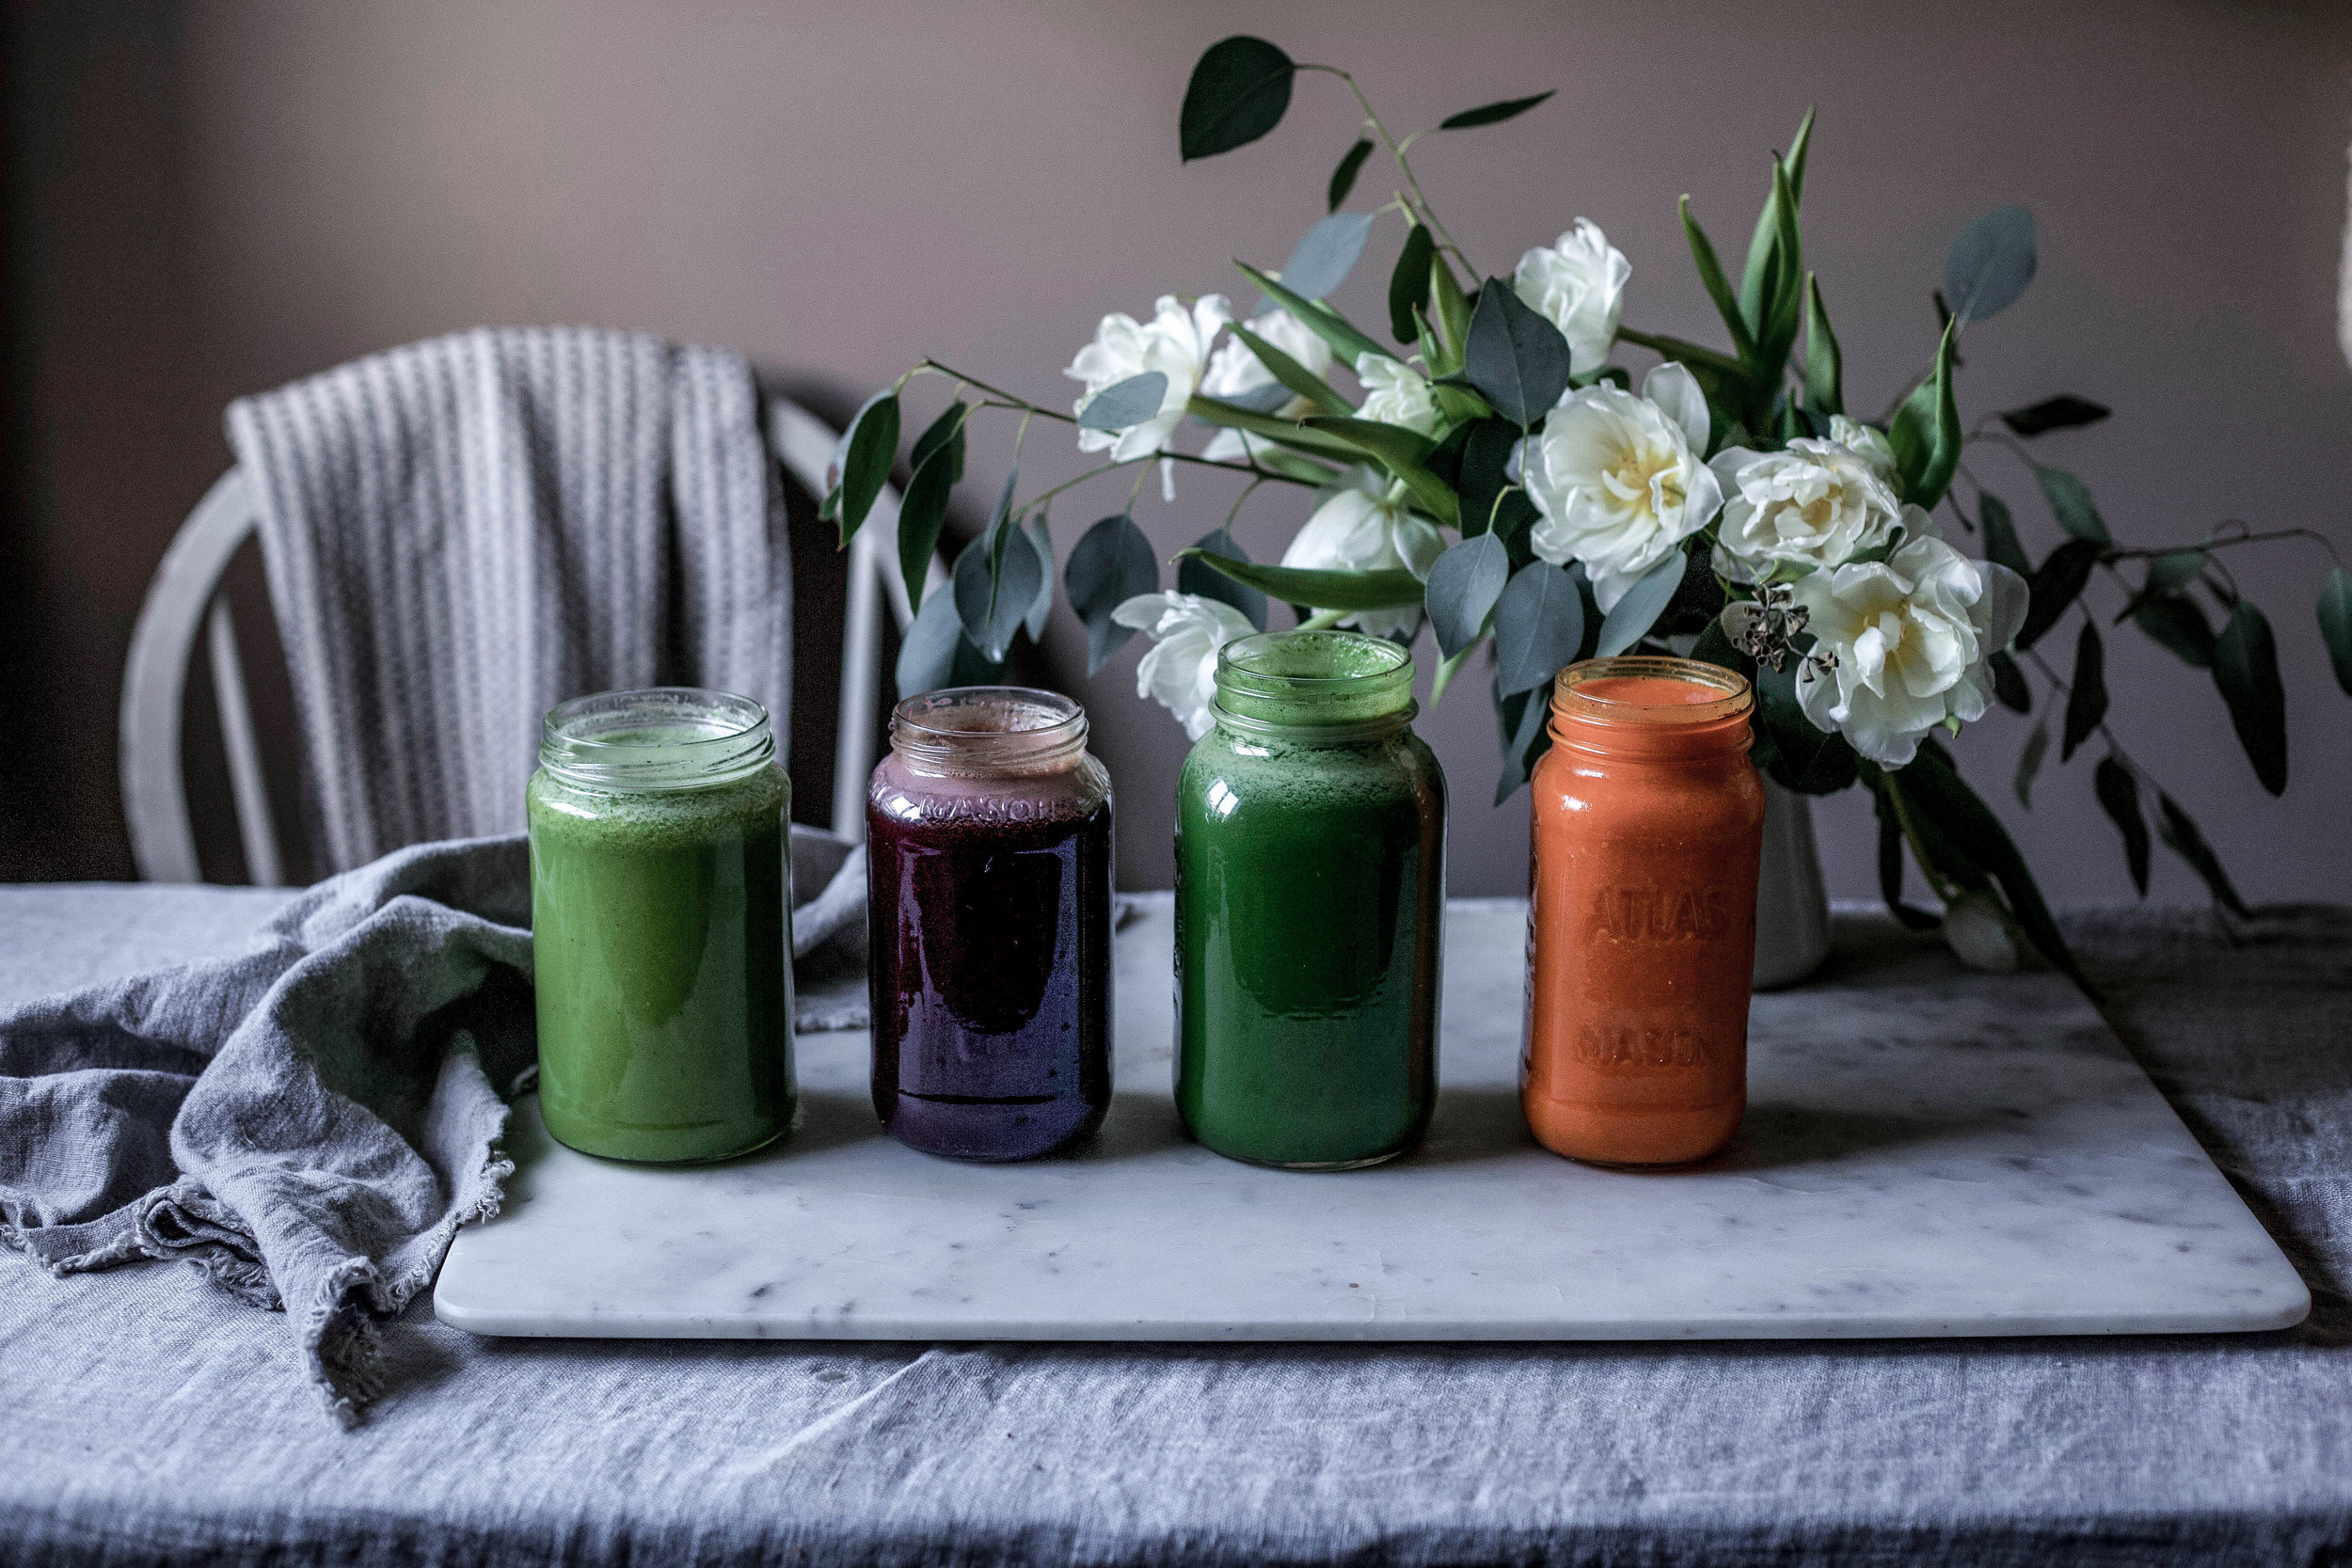 3 day homemade juicing cleanse (72 of 1).jpg